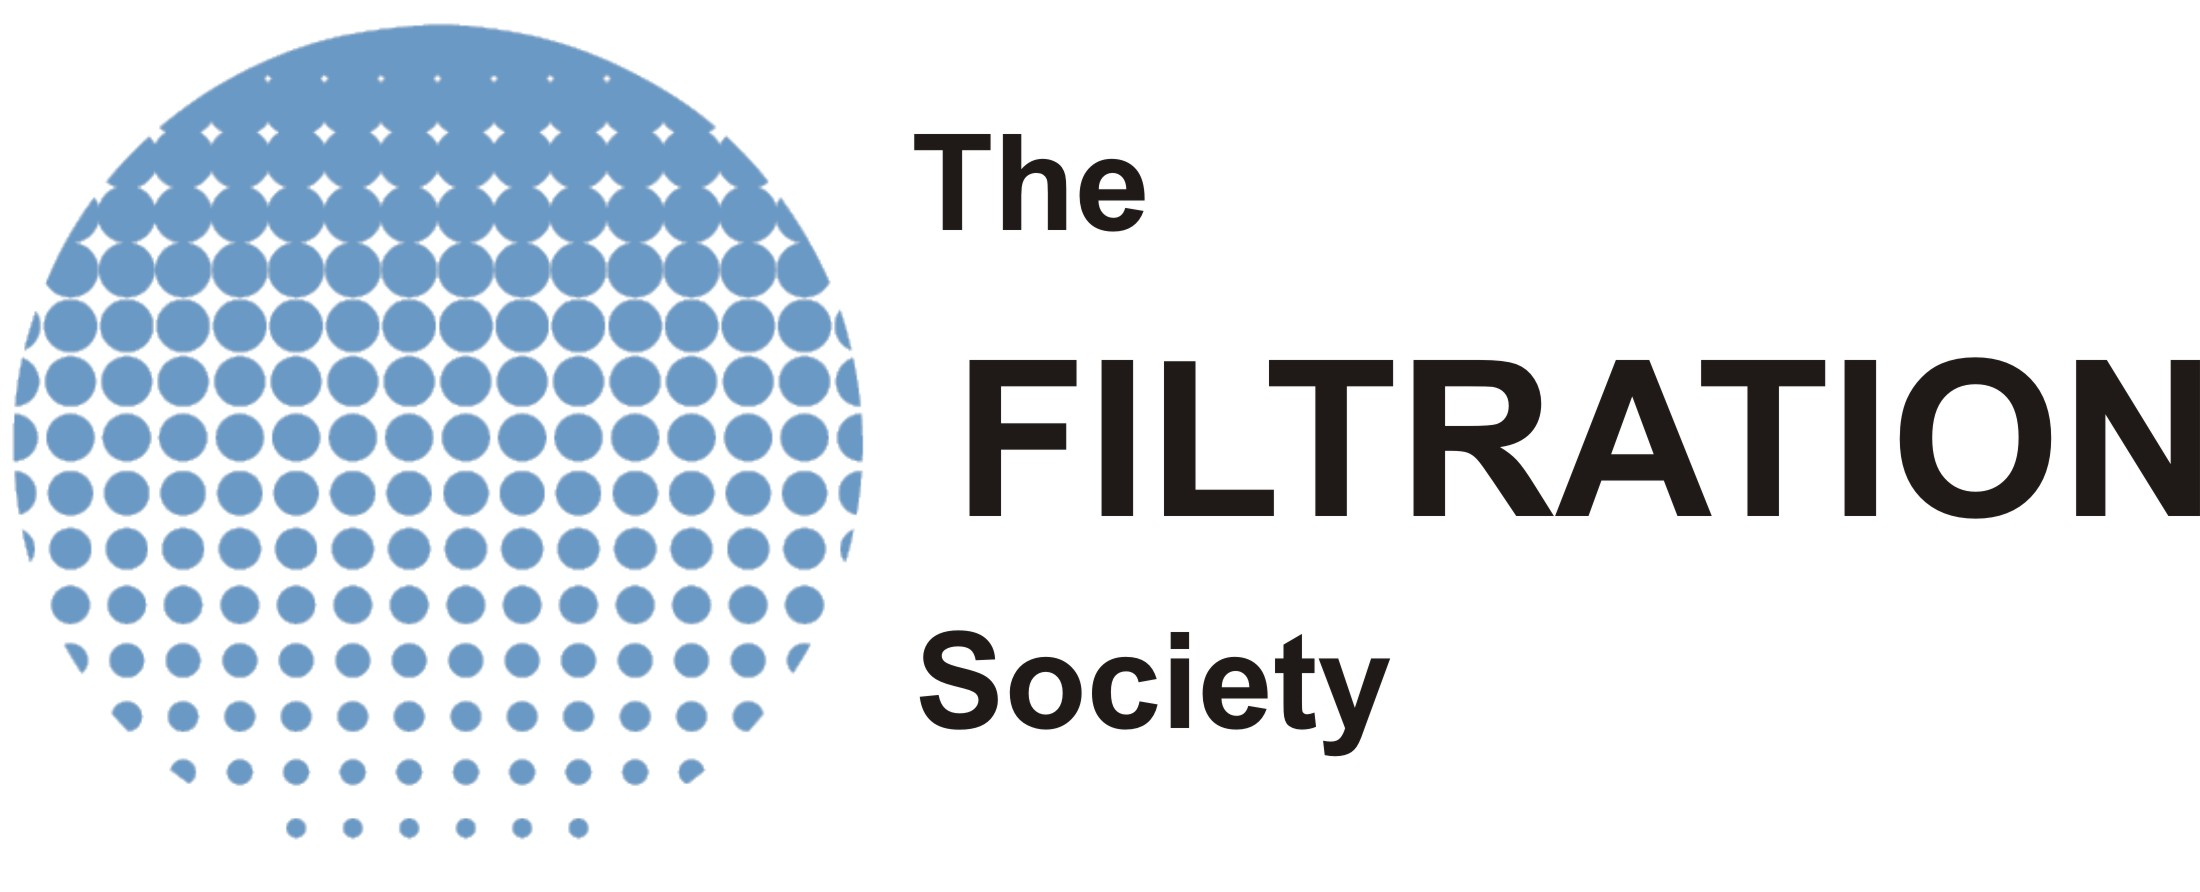 logo for Filtration Society, The